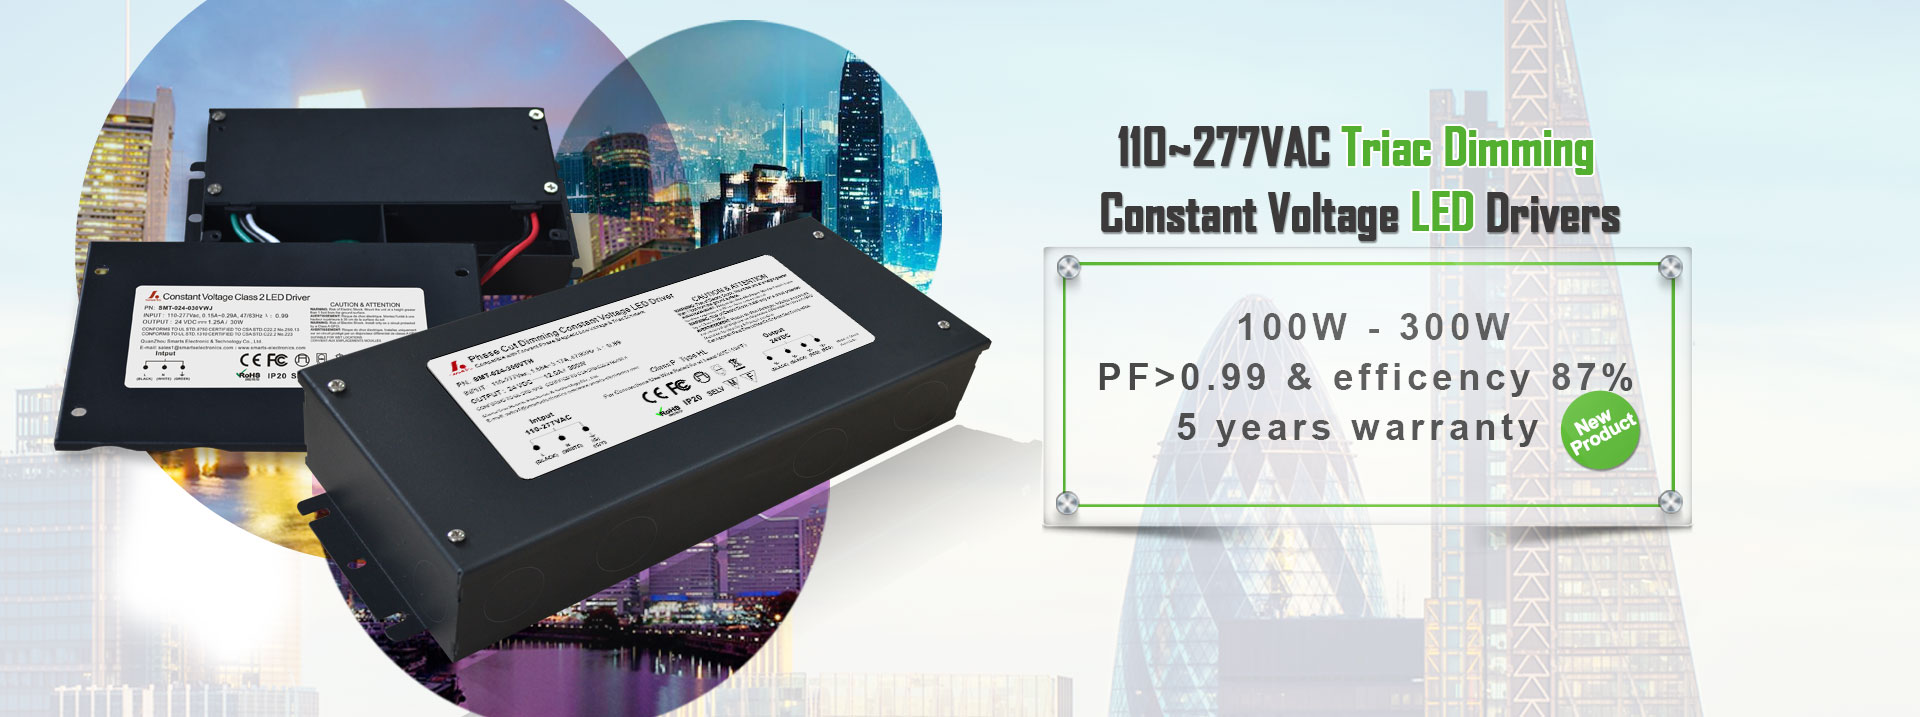 Constant Voltage LED Drivers